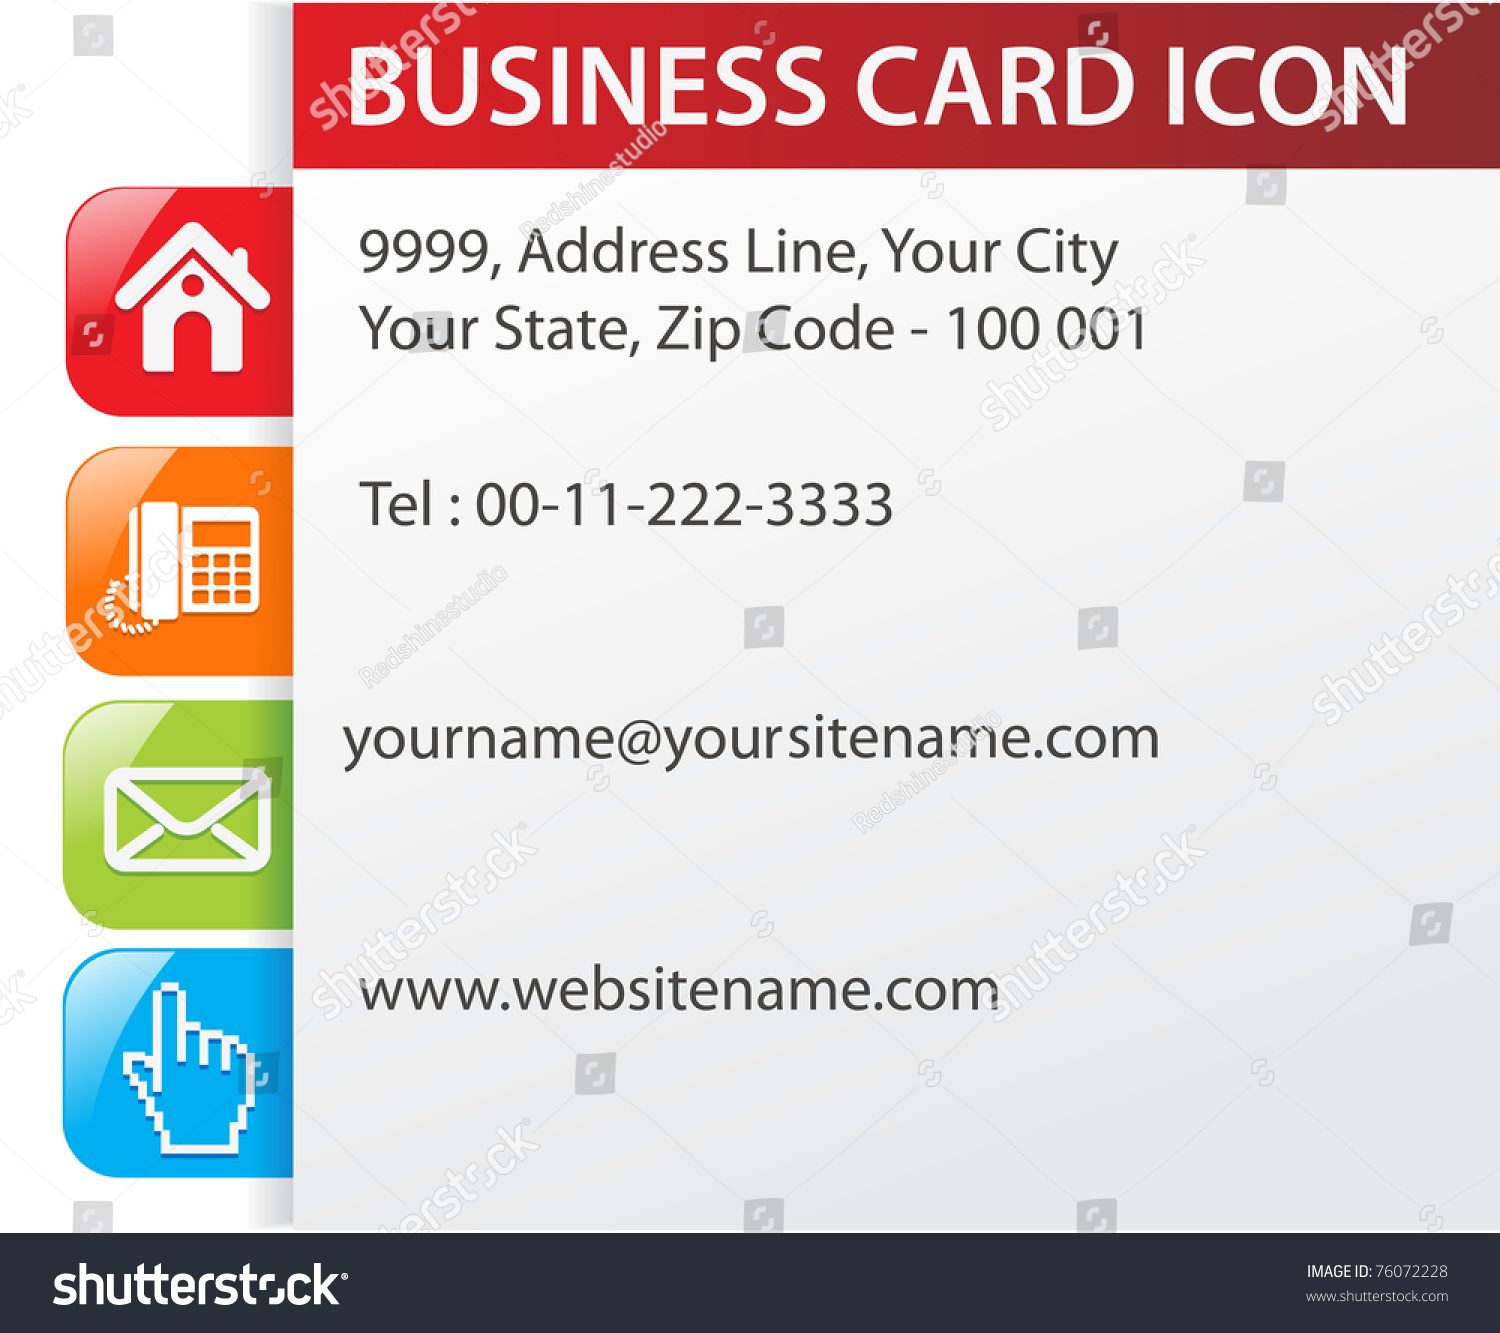 contact us php template - contact us page web site design 76072228 shutterstock